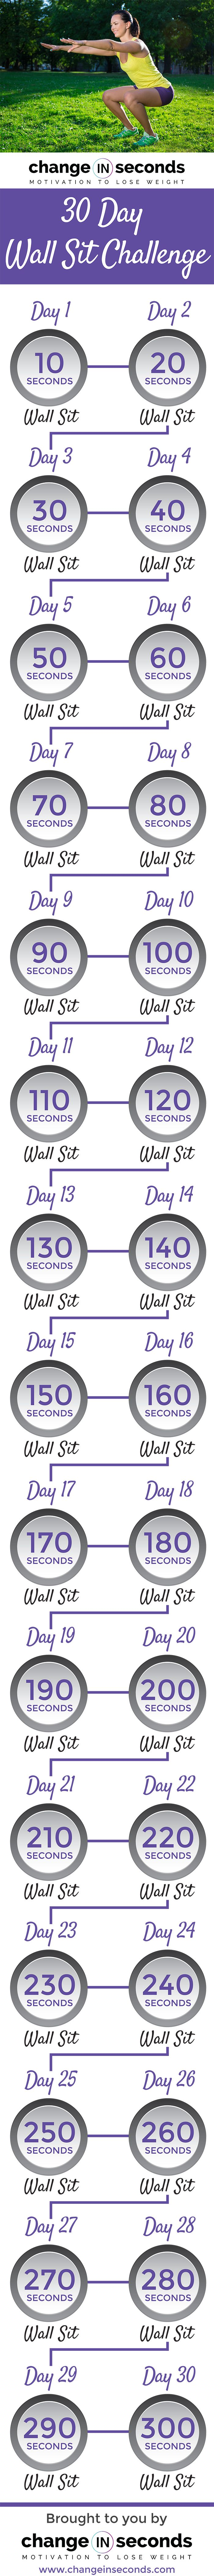 Wall Sit Challenge (Download PDF) http://www.changeinseconds.com/30-day-wall-sit-challenge/